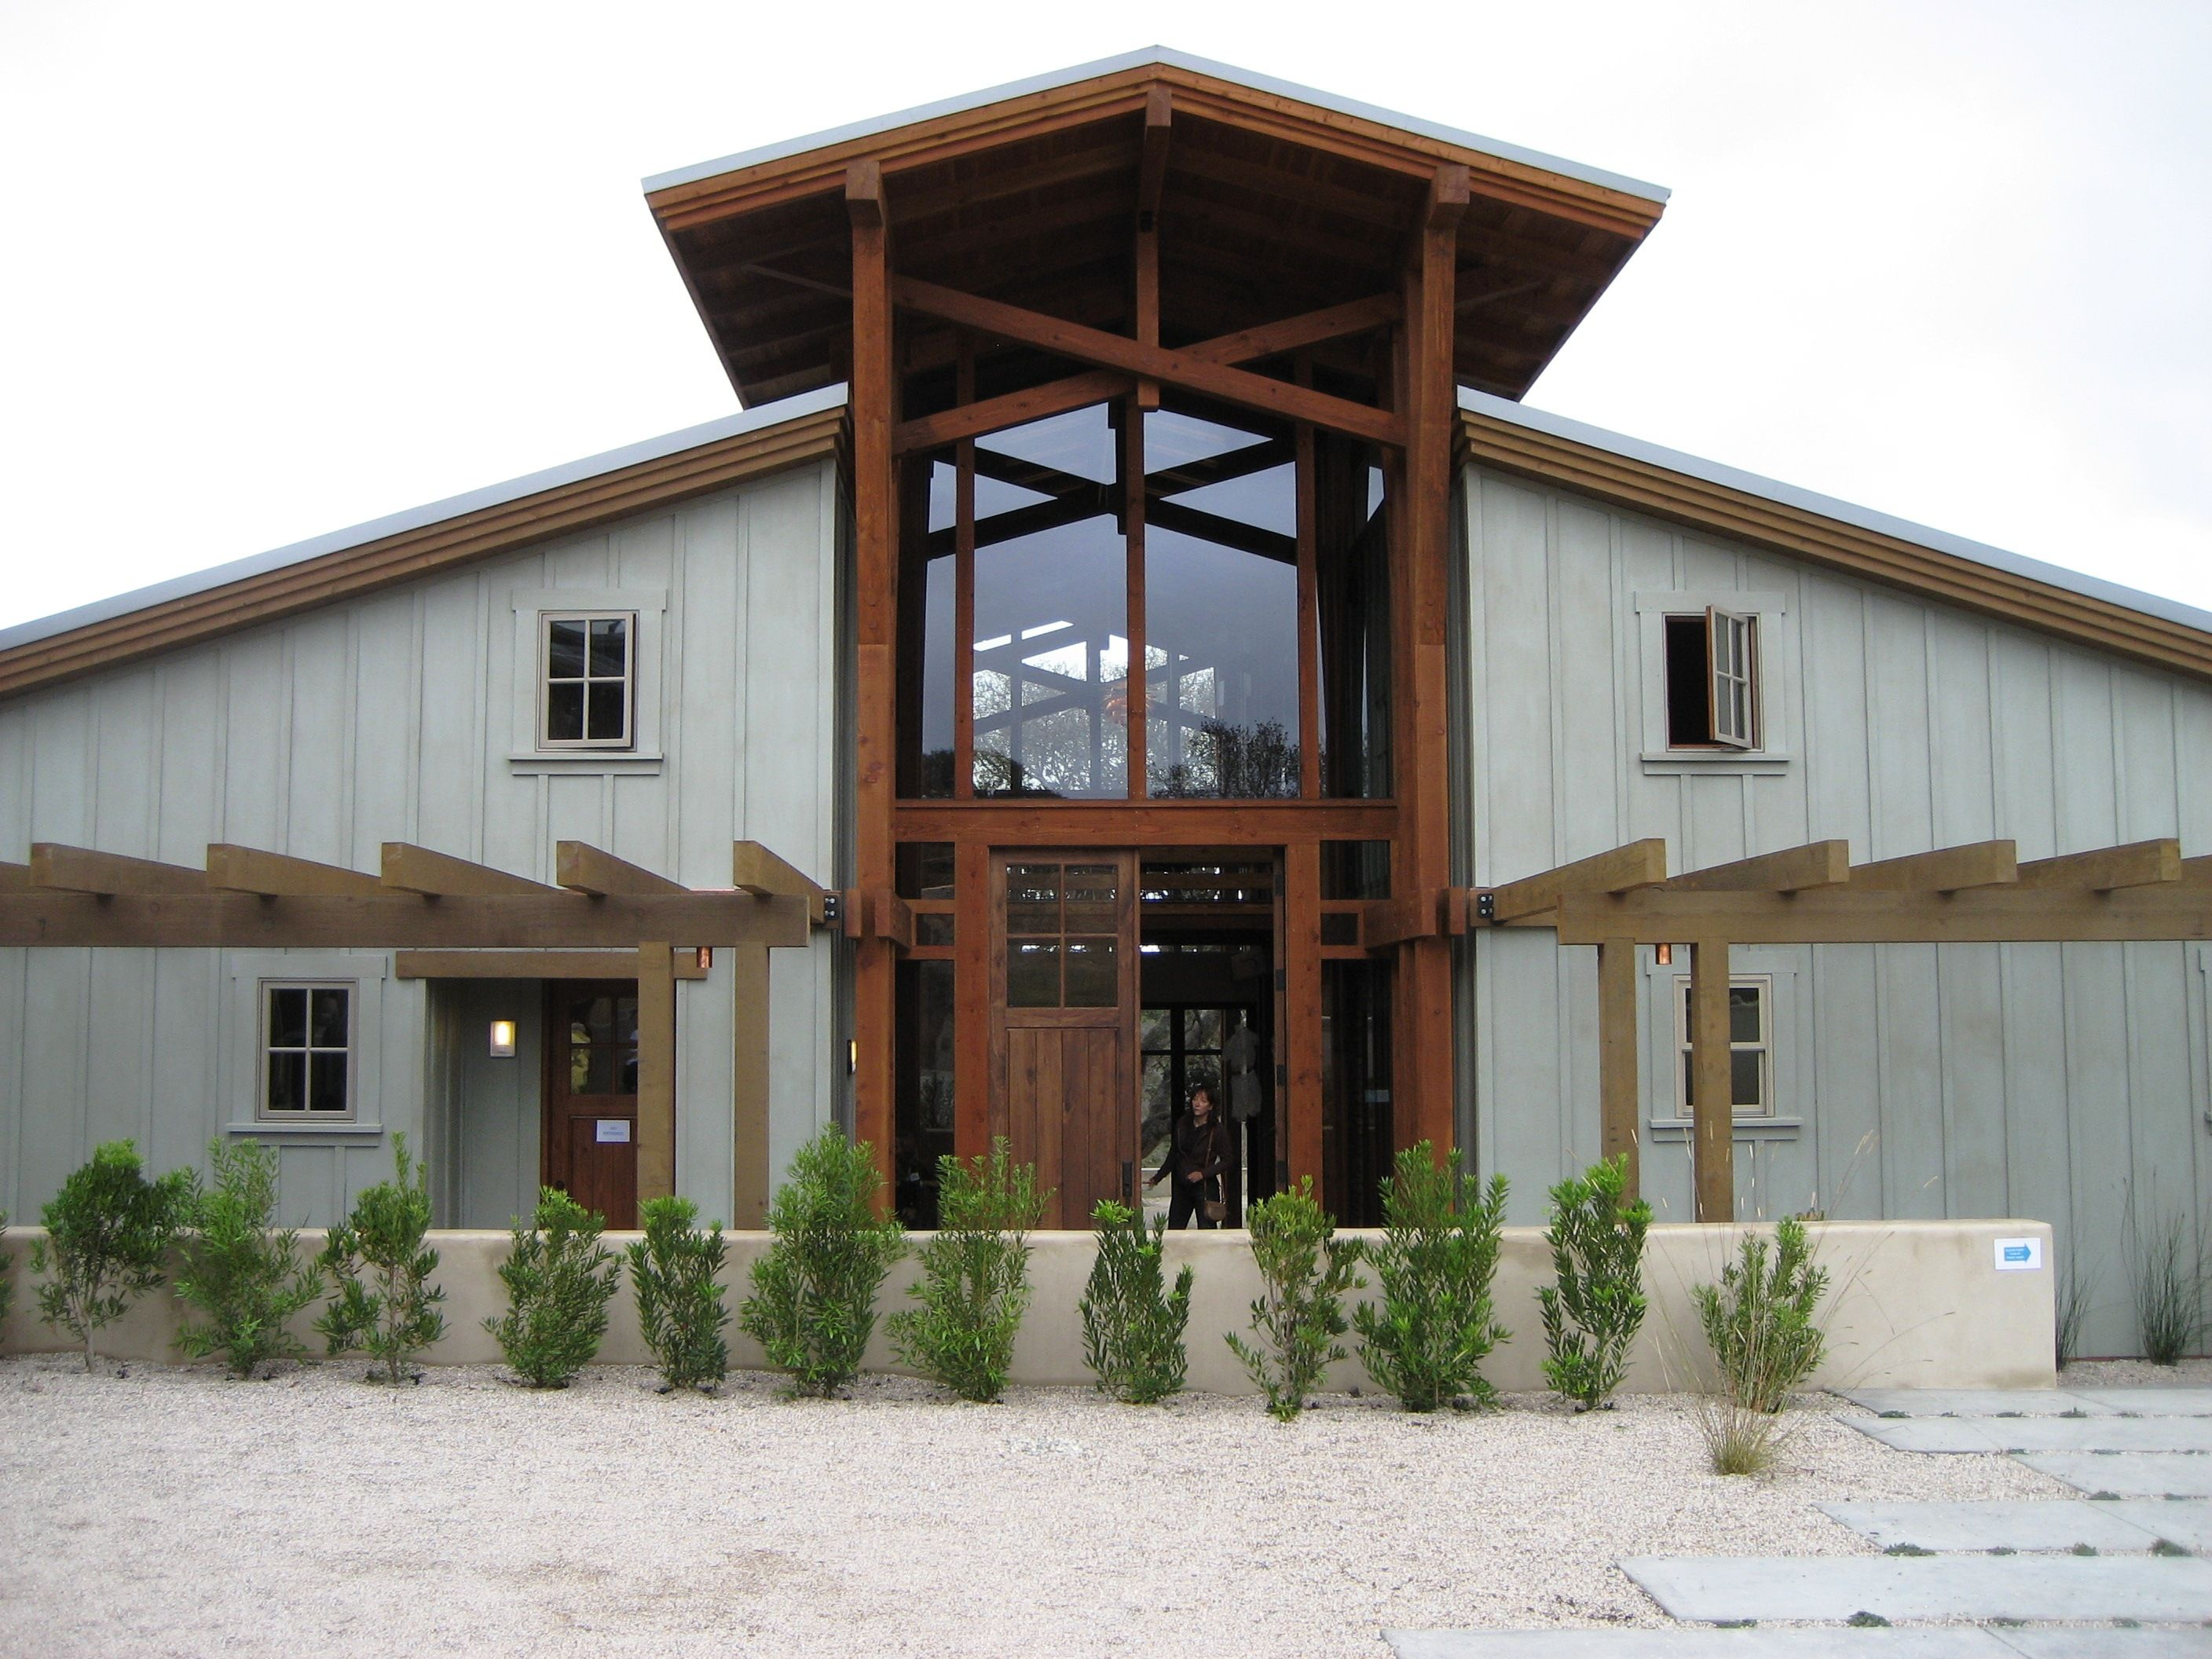 Arena barn and apartment all under one roof this could for Barn home design ideas